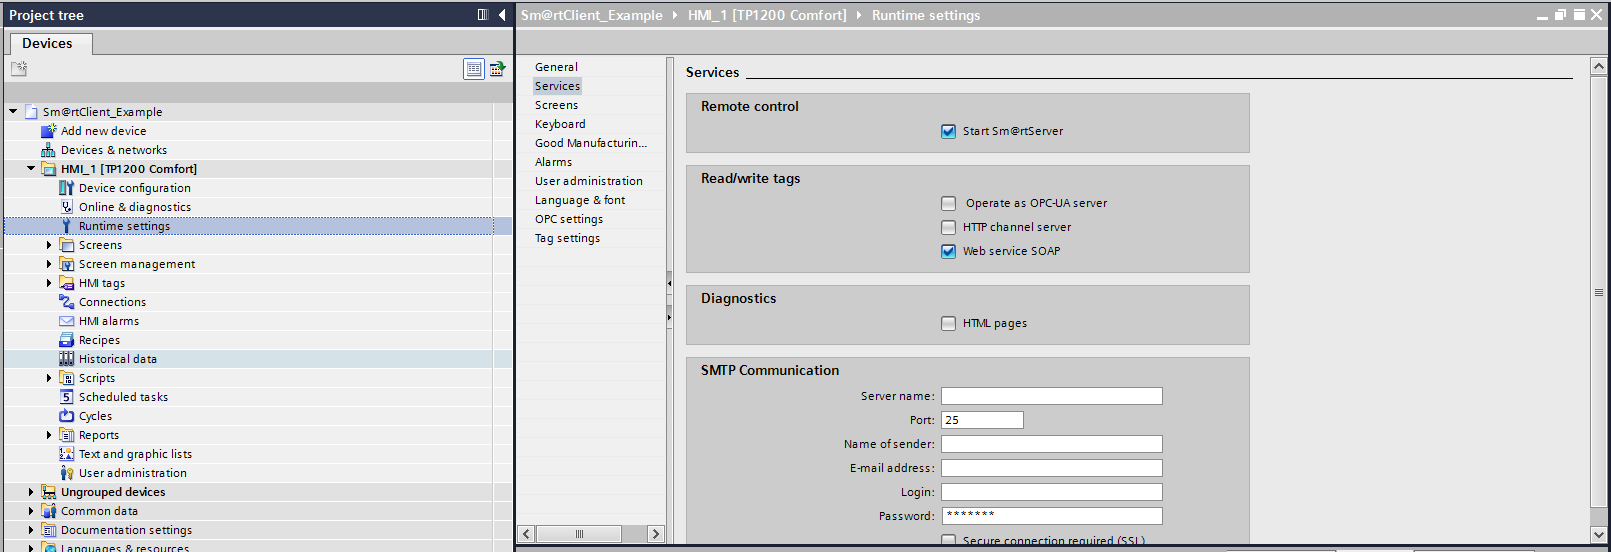 Comfort Panel TIA Portal Project Runtime Settings